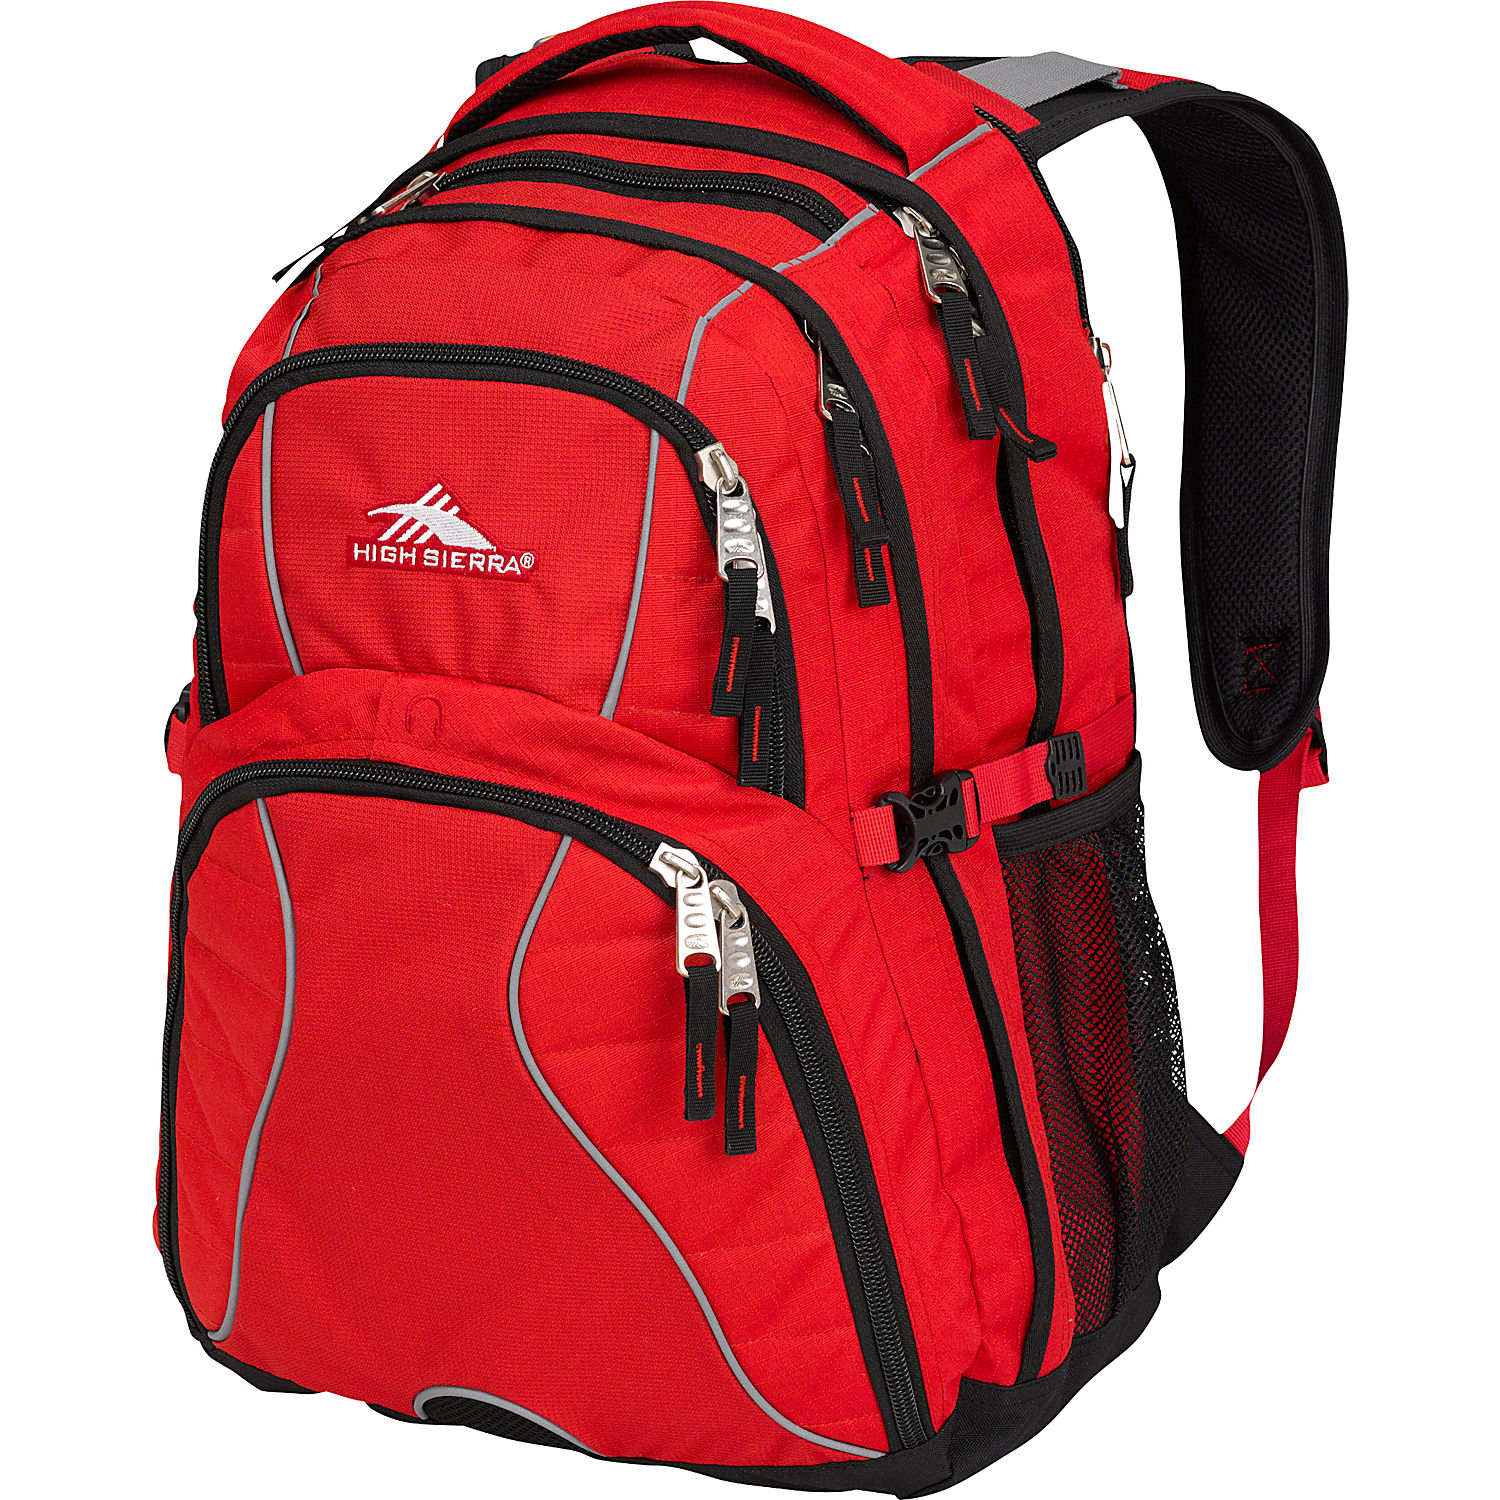 High Sierra Swerve Laptop Backpack Free Shipping Ebags Com